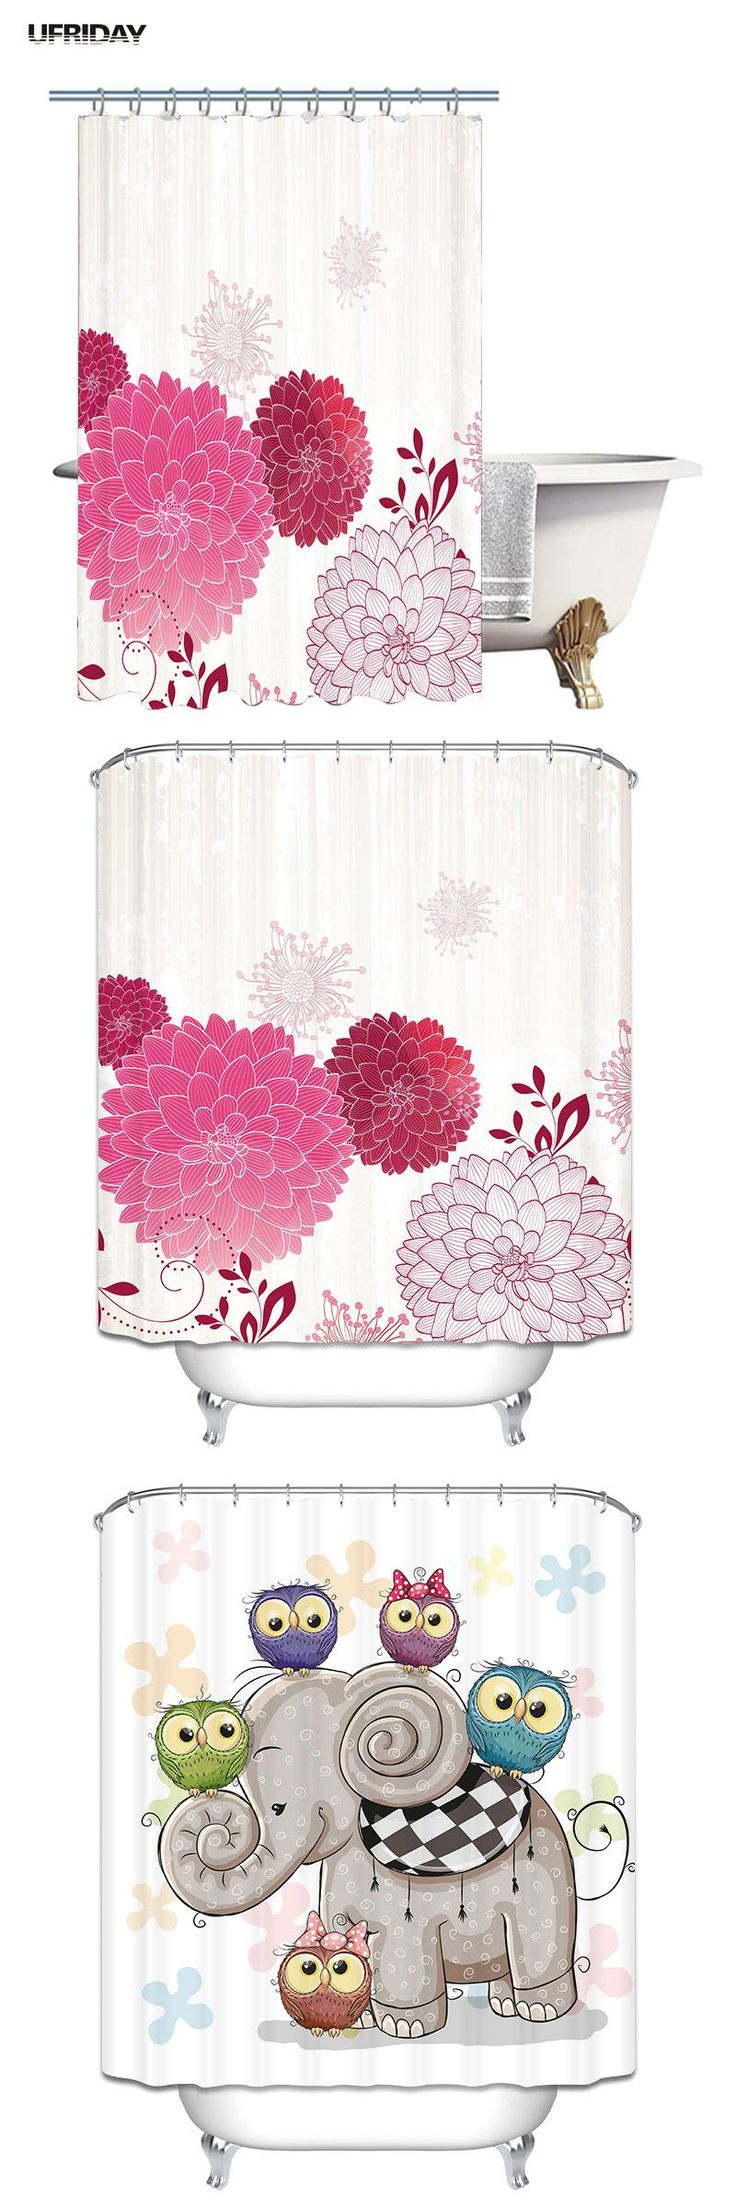 [Visit to Buy] UFRIDAY 3D Shower Curtain Flowers Tree Leaves Elephant Paint Waterproof Cortinas Floral Design 3D Shower Curtains Bath Curtains #Advertisement